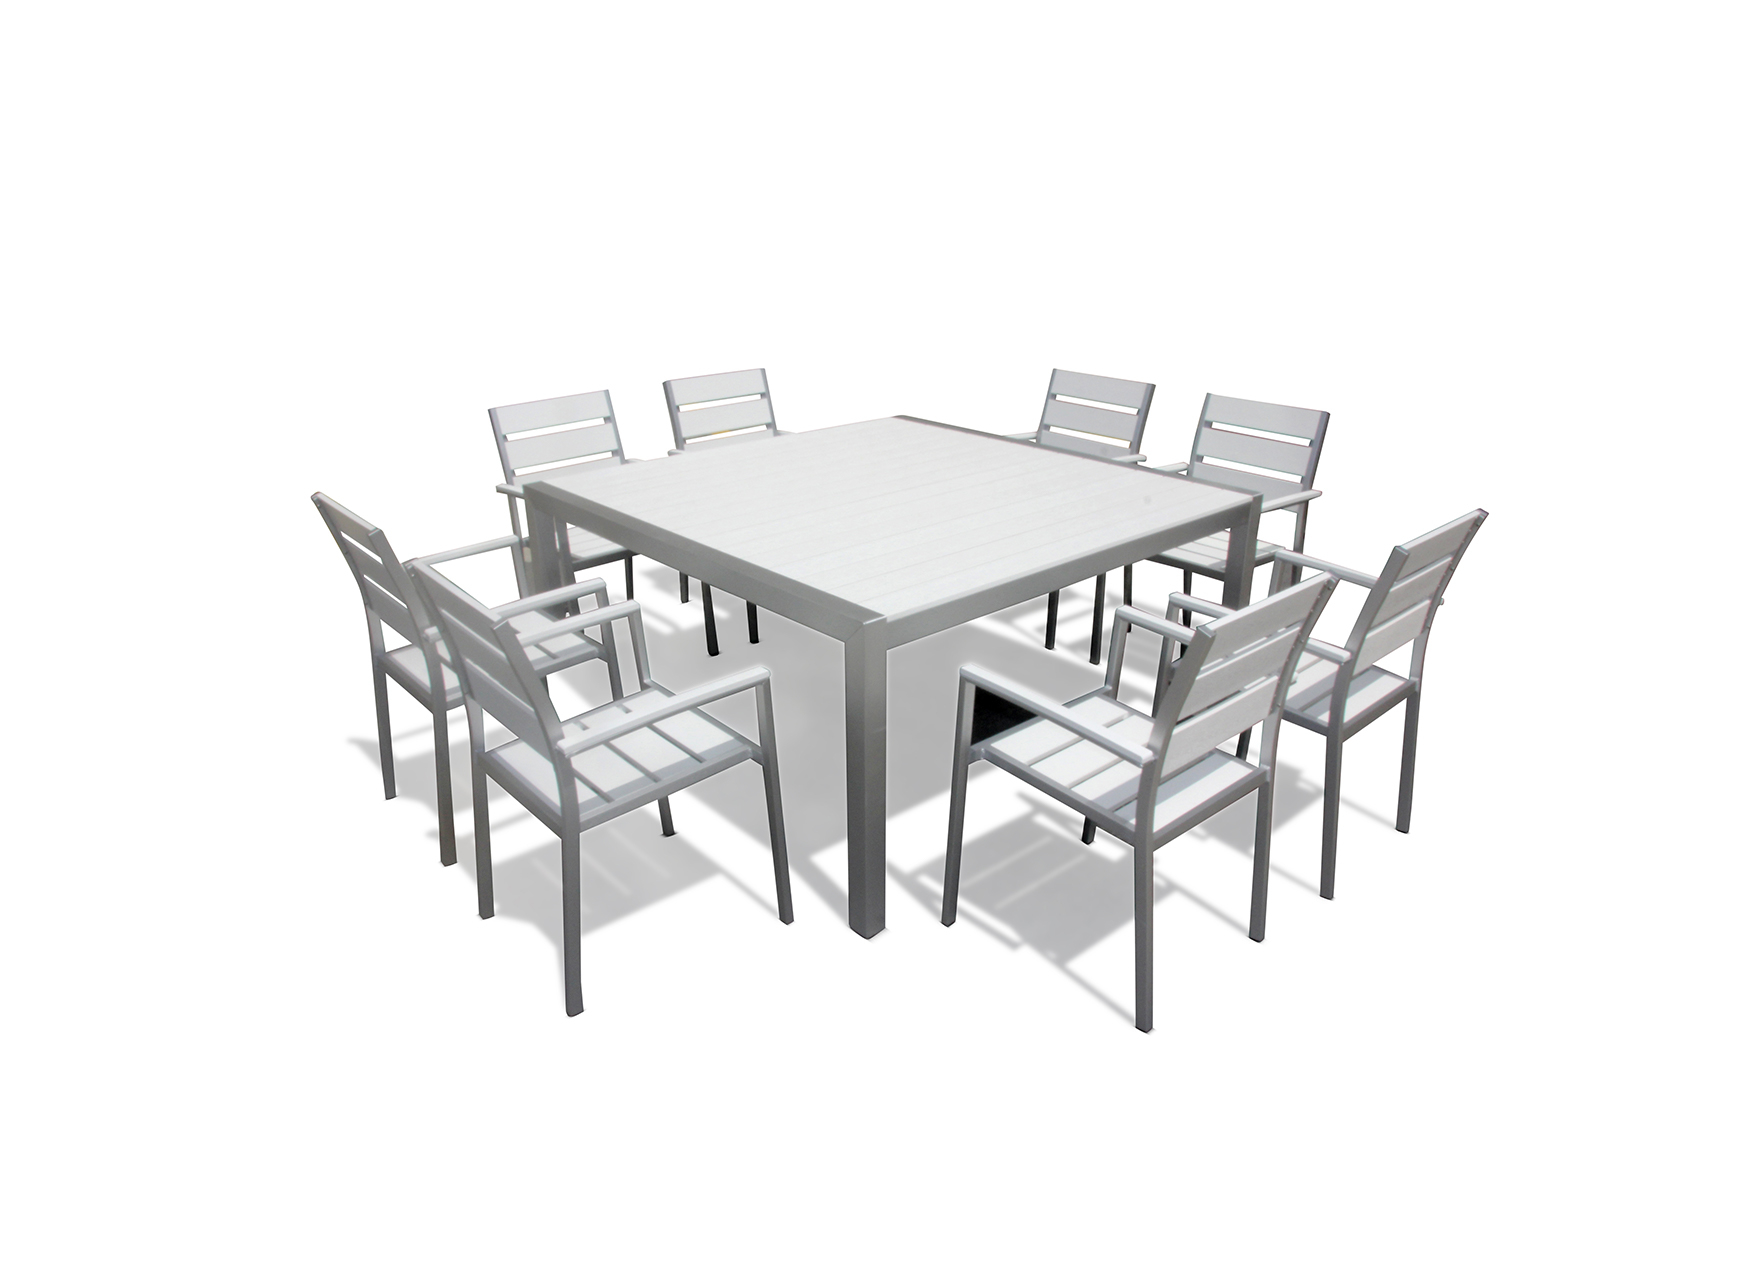 Torino Aluminum Resin 9-Pc Square Dining Table & Chairs Set